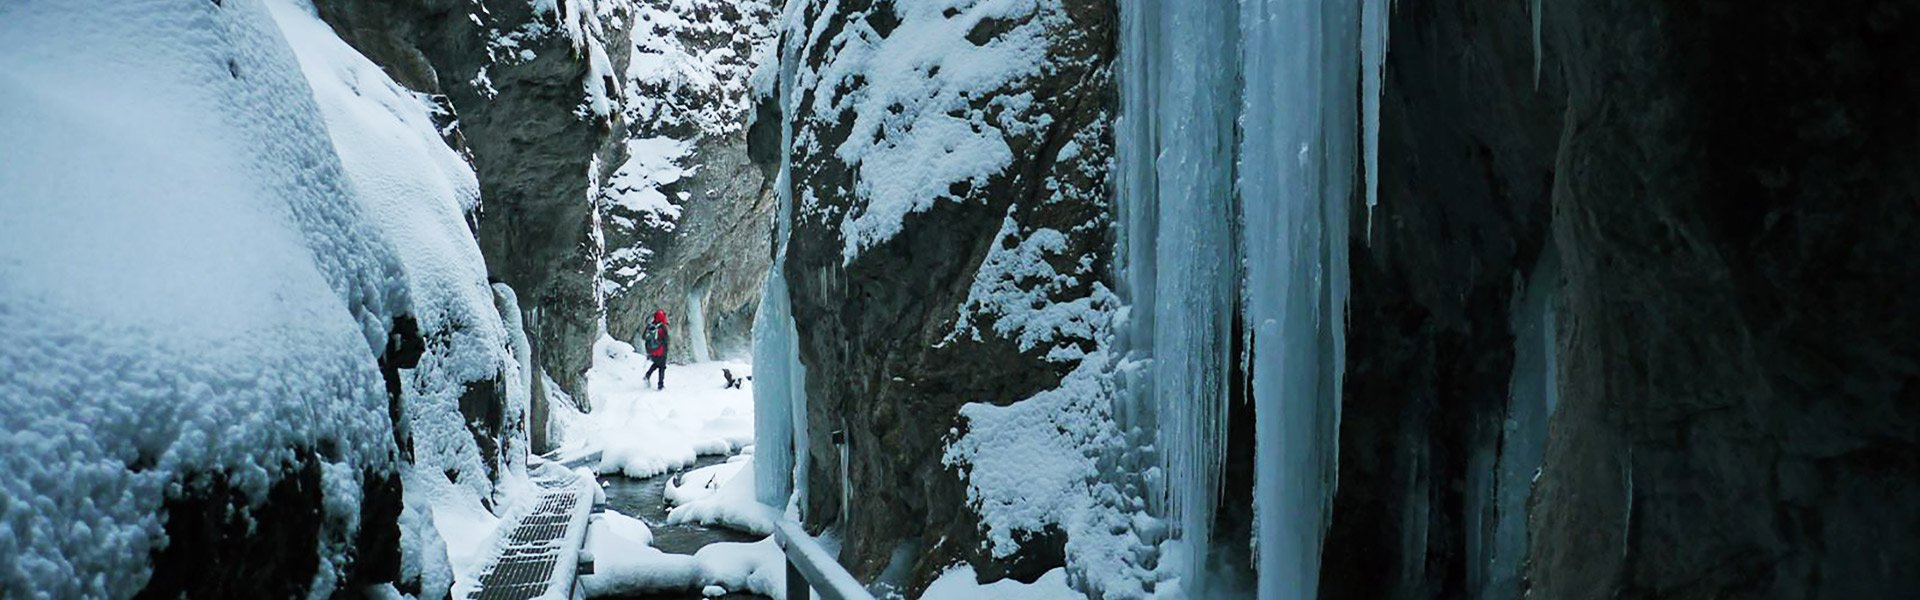 FROZEN GORGE DIERY - HIKING DURING WINTER IN MALA FATRA SLOVAKIA